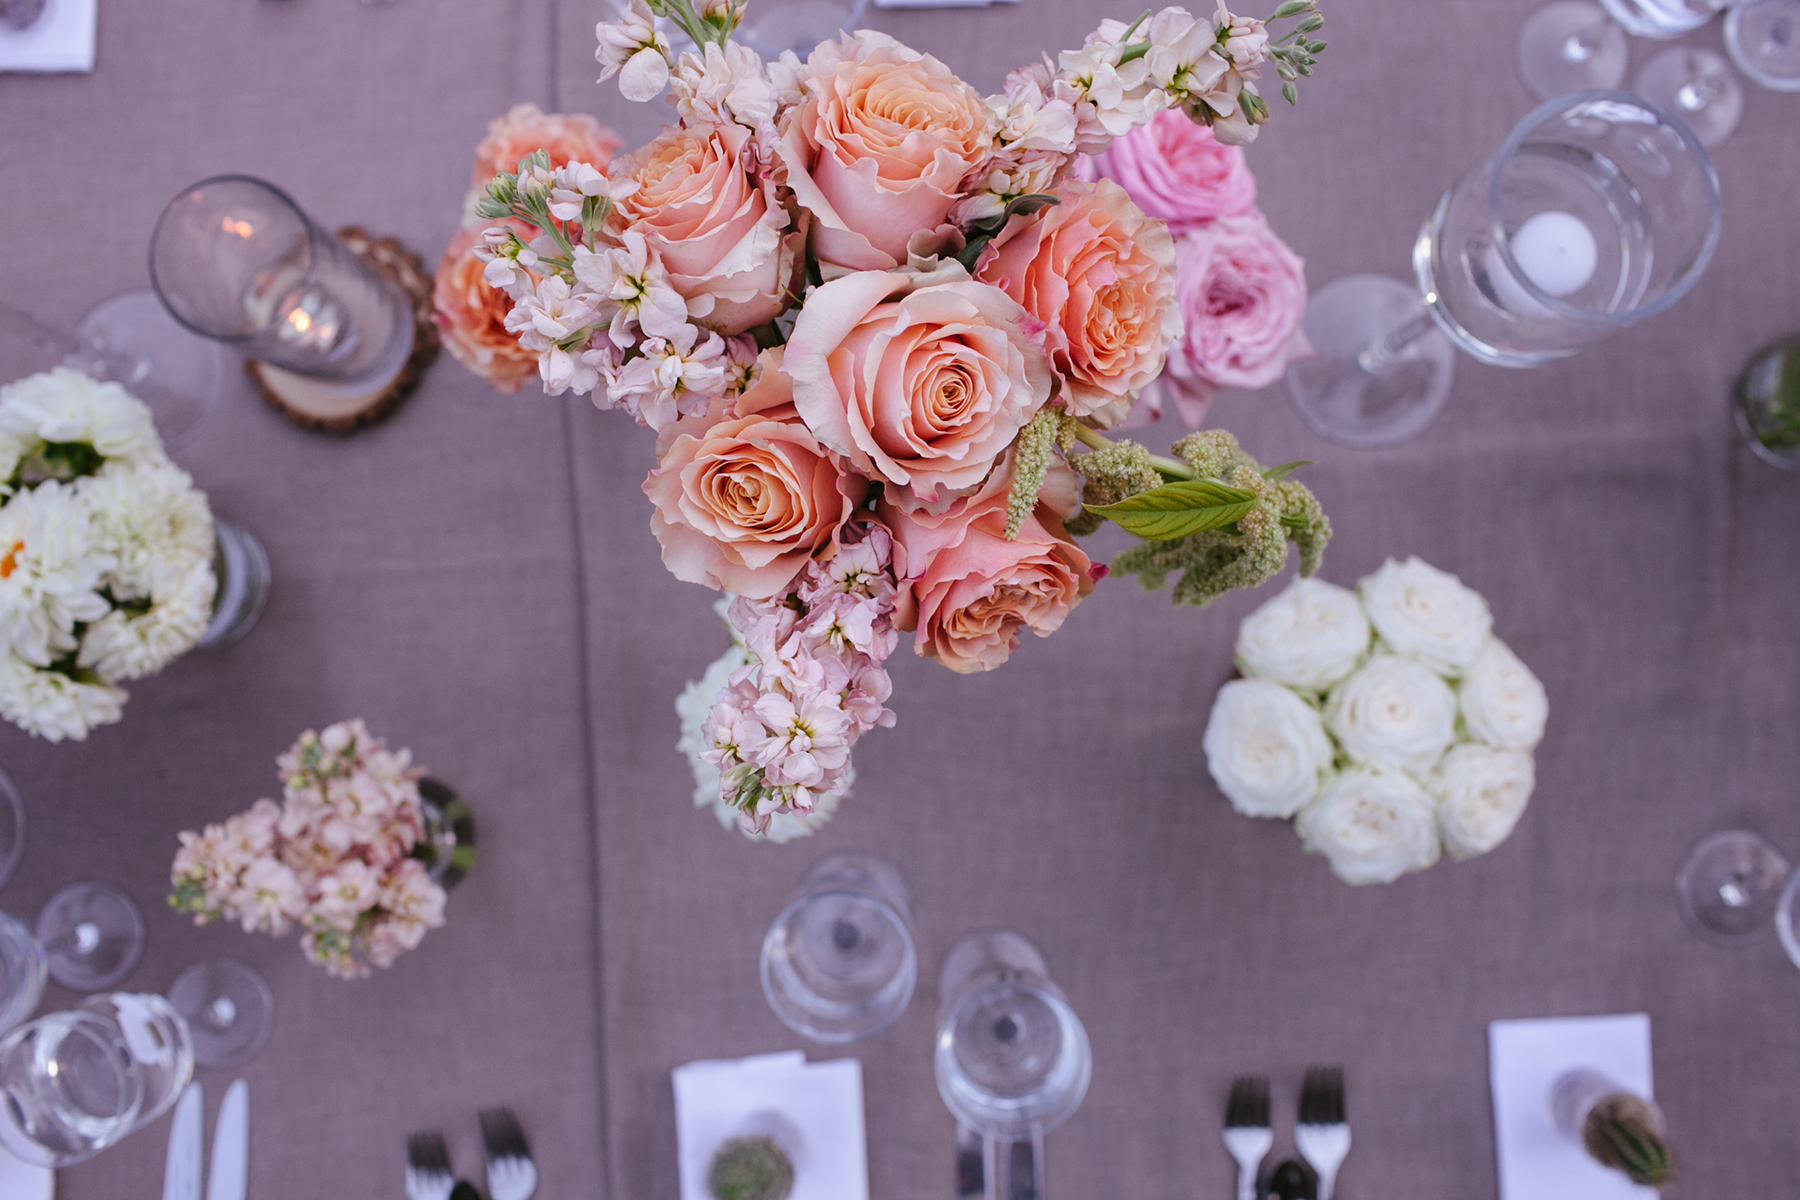 Fresh flowers enliven a communal table.